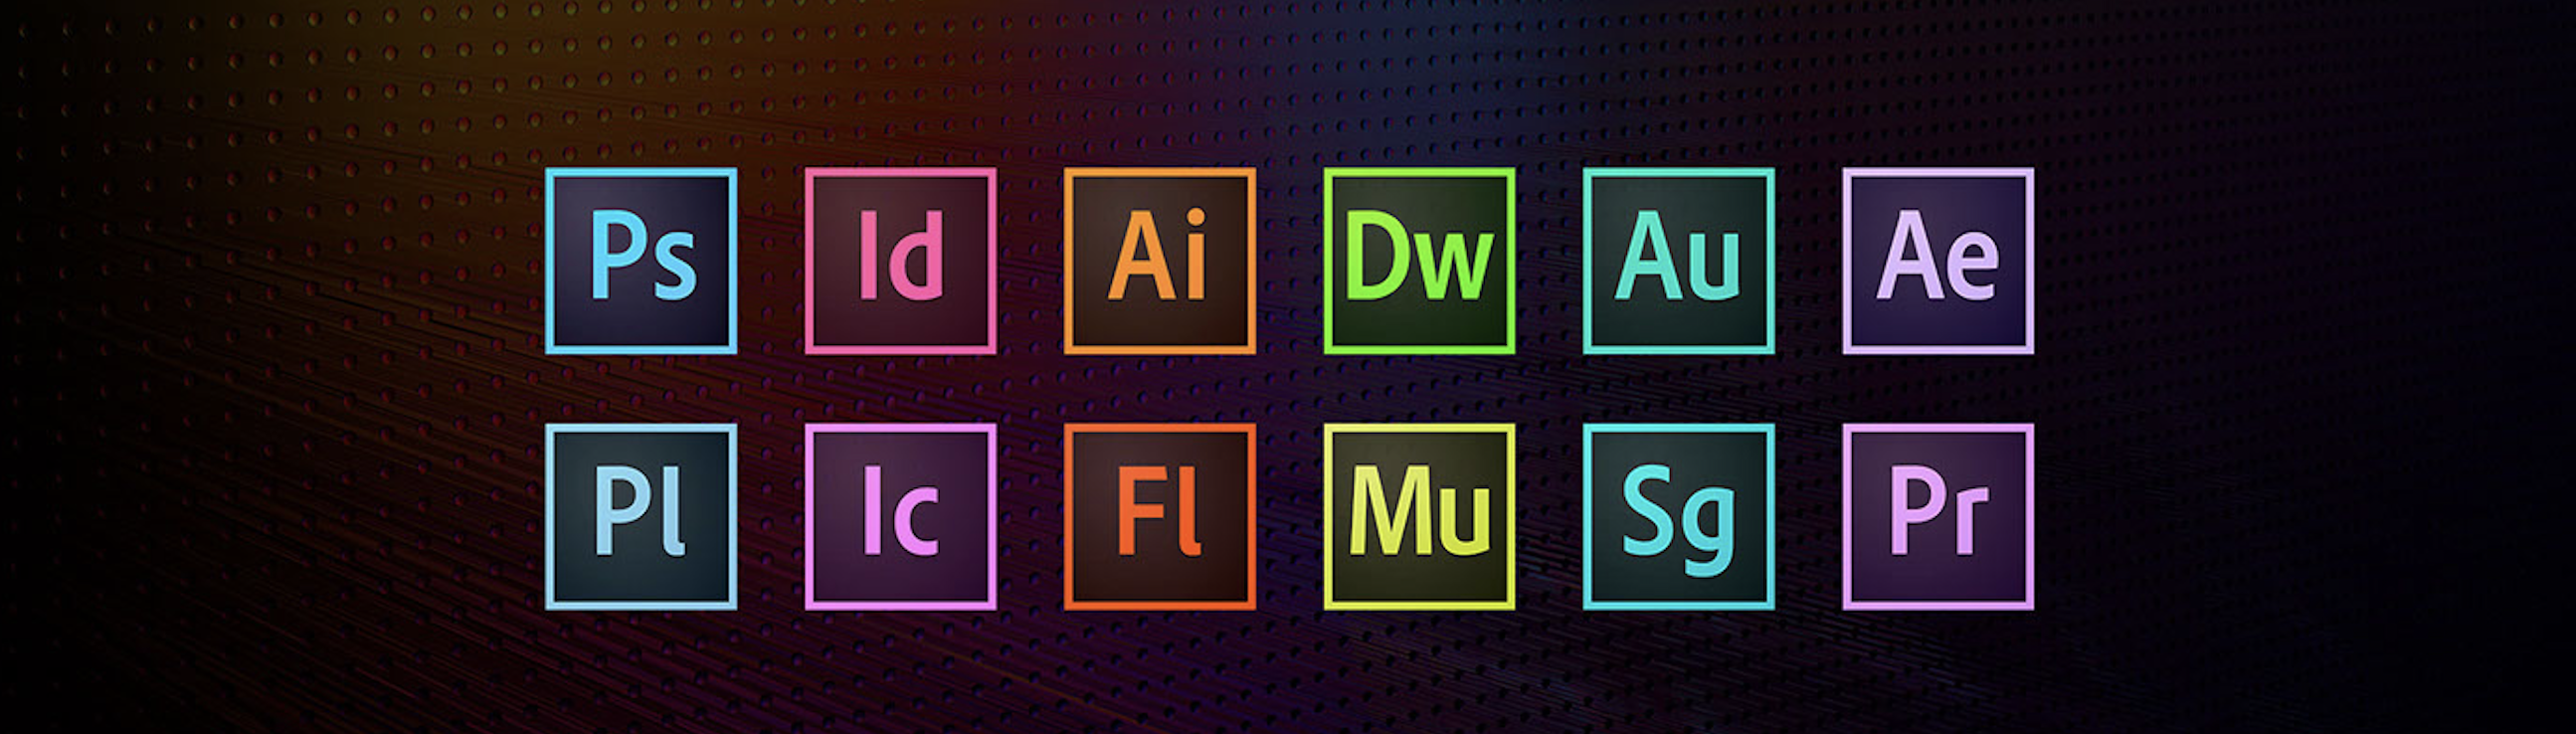 Colorful icons representing programs in the Adobe Creative Cloud suite.